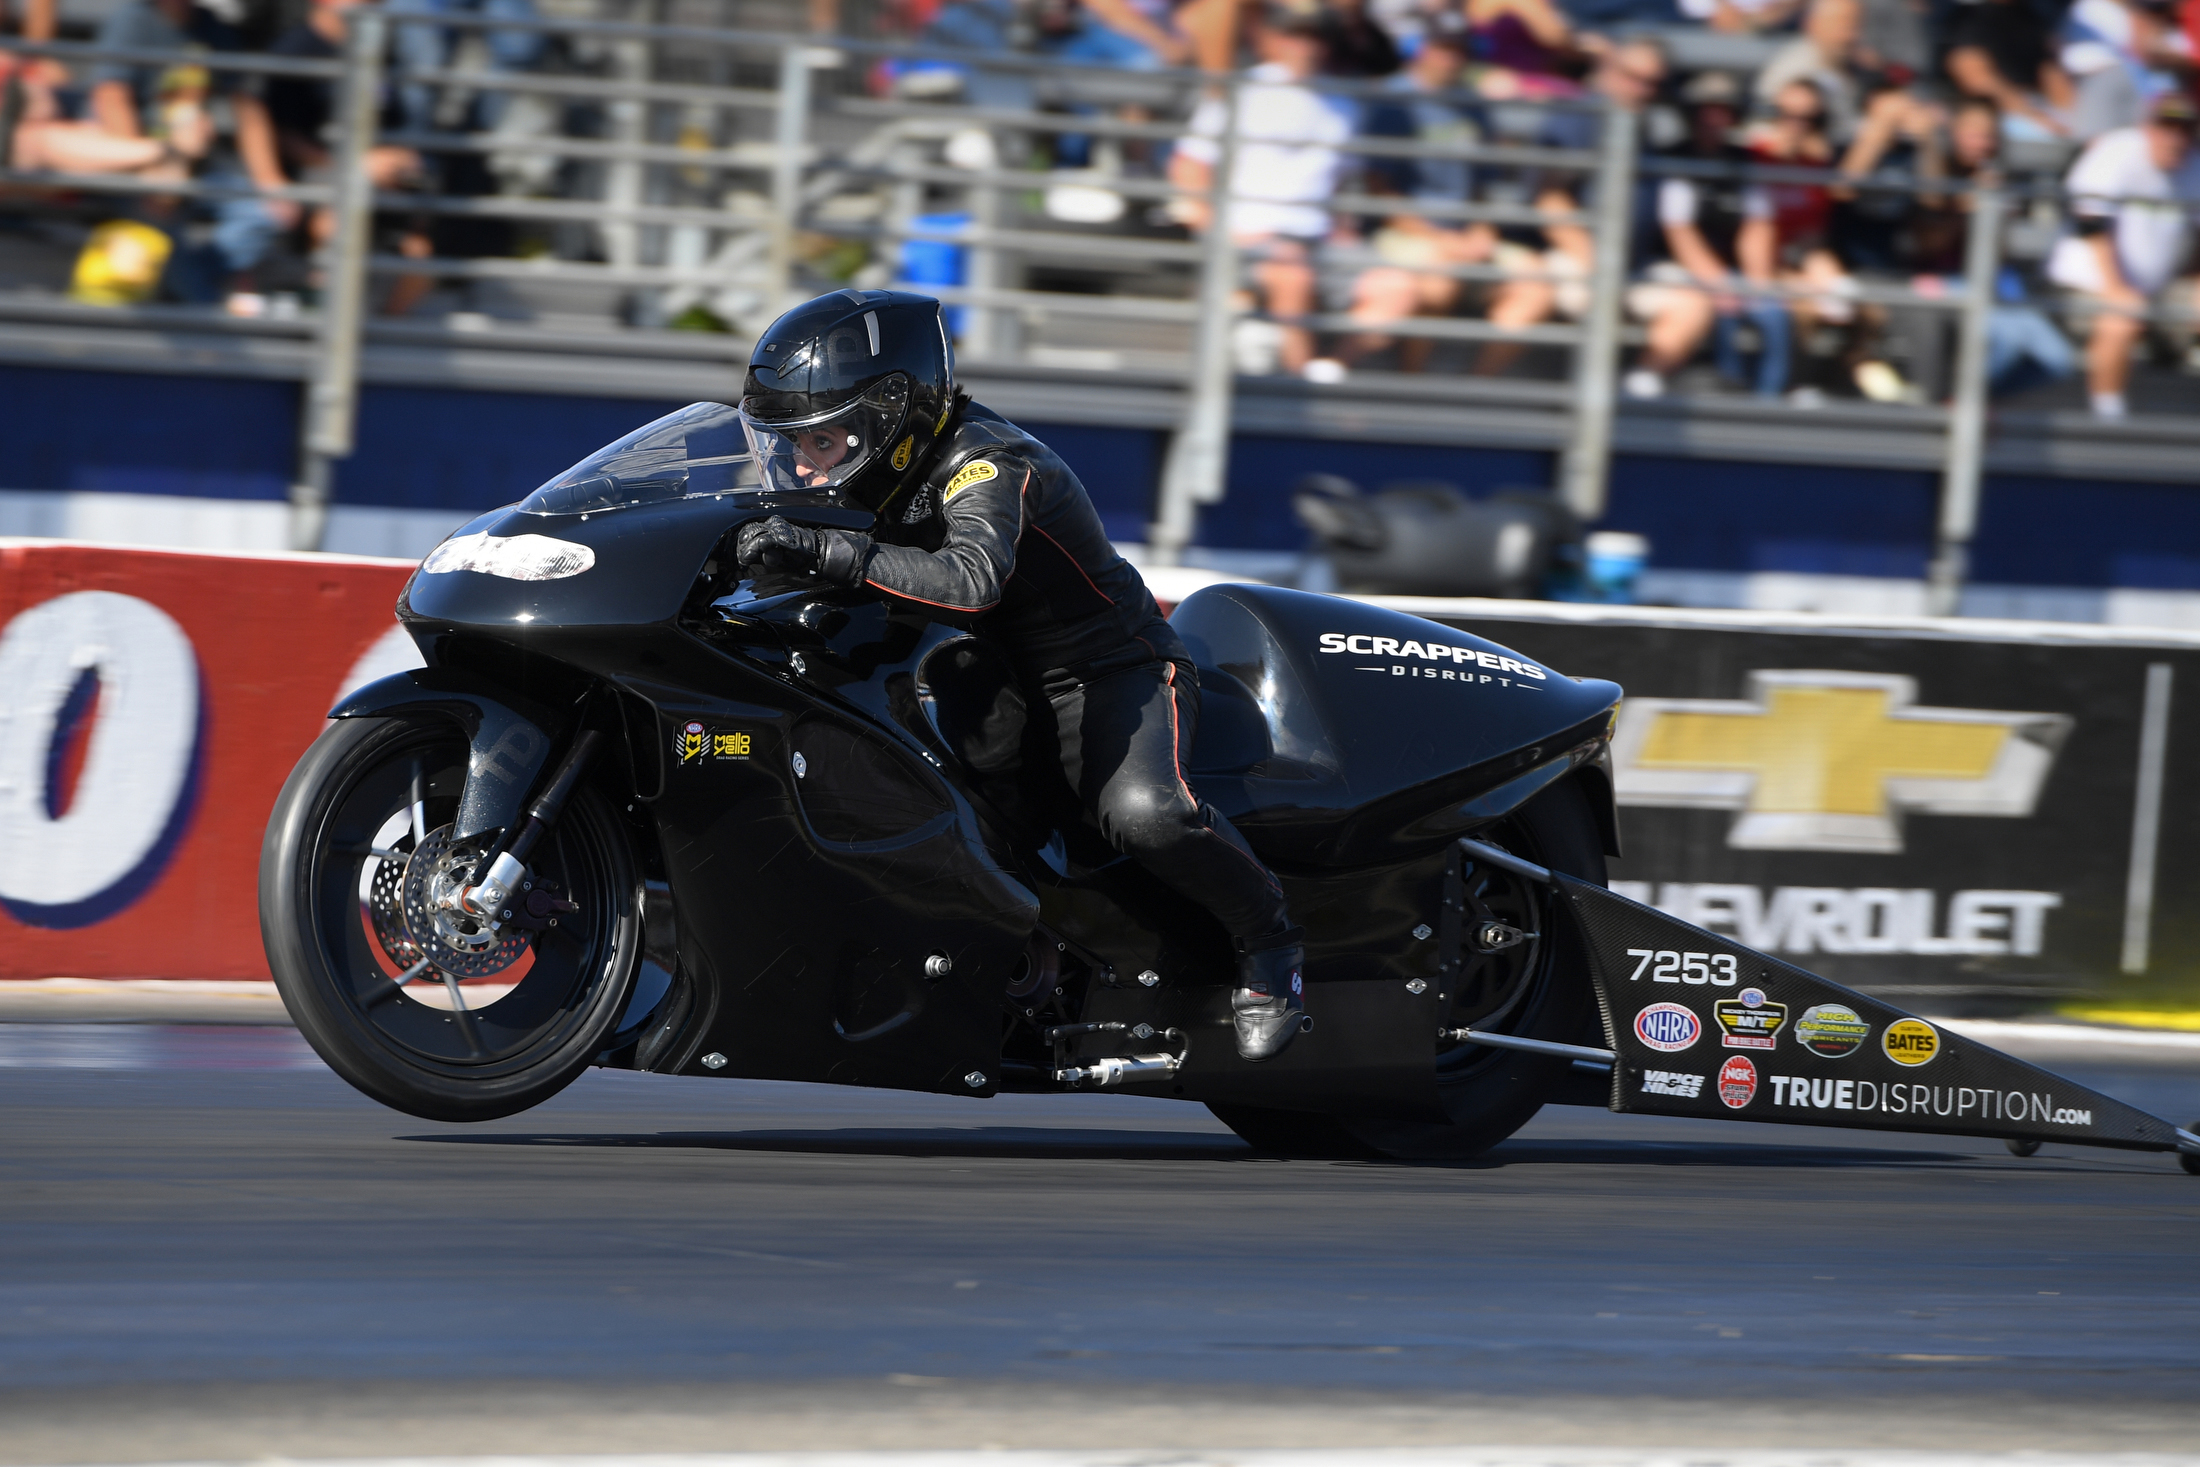 Scrappers Racing Pro Stock Motorcycle rider Jianna Salinas racing on Sunday at the Auto Club NHRA Finals